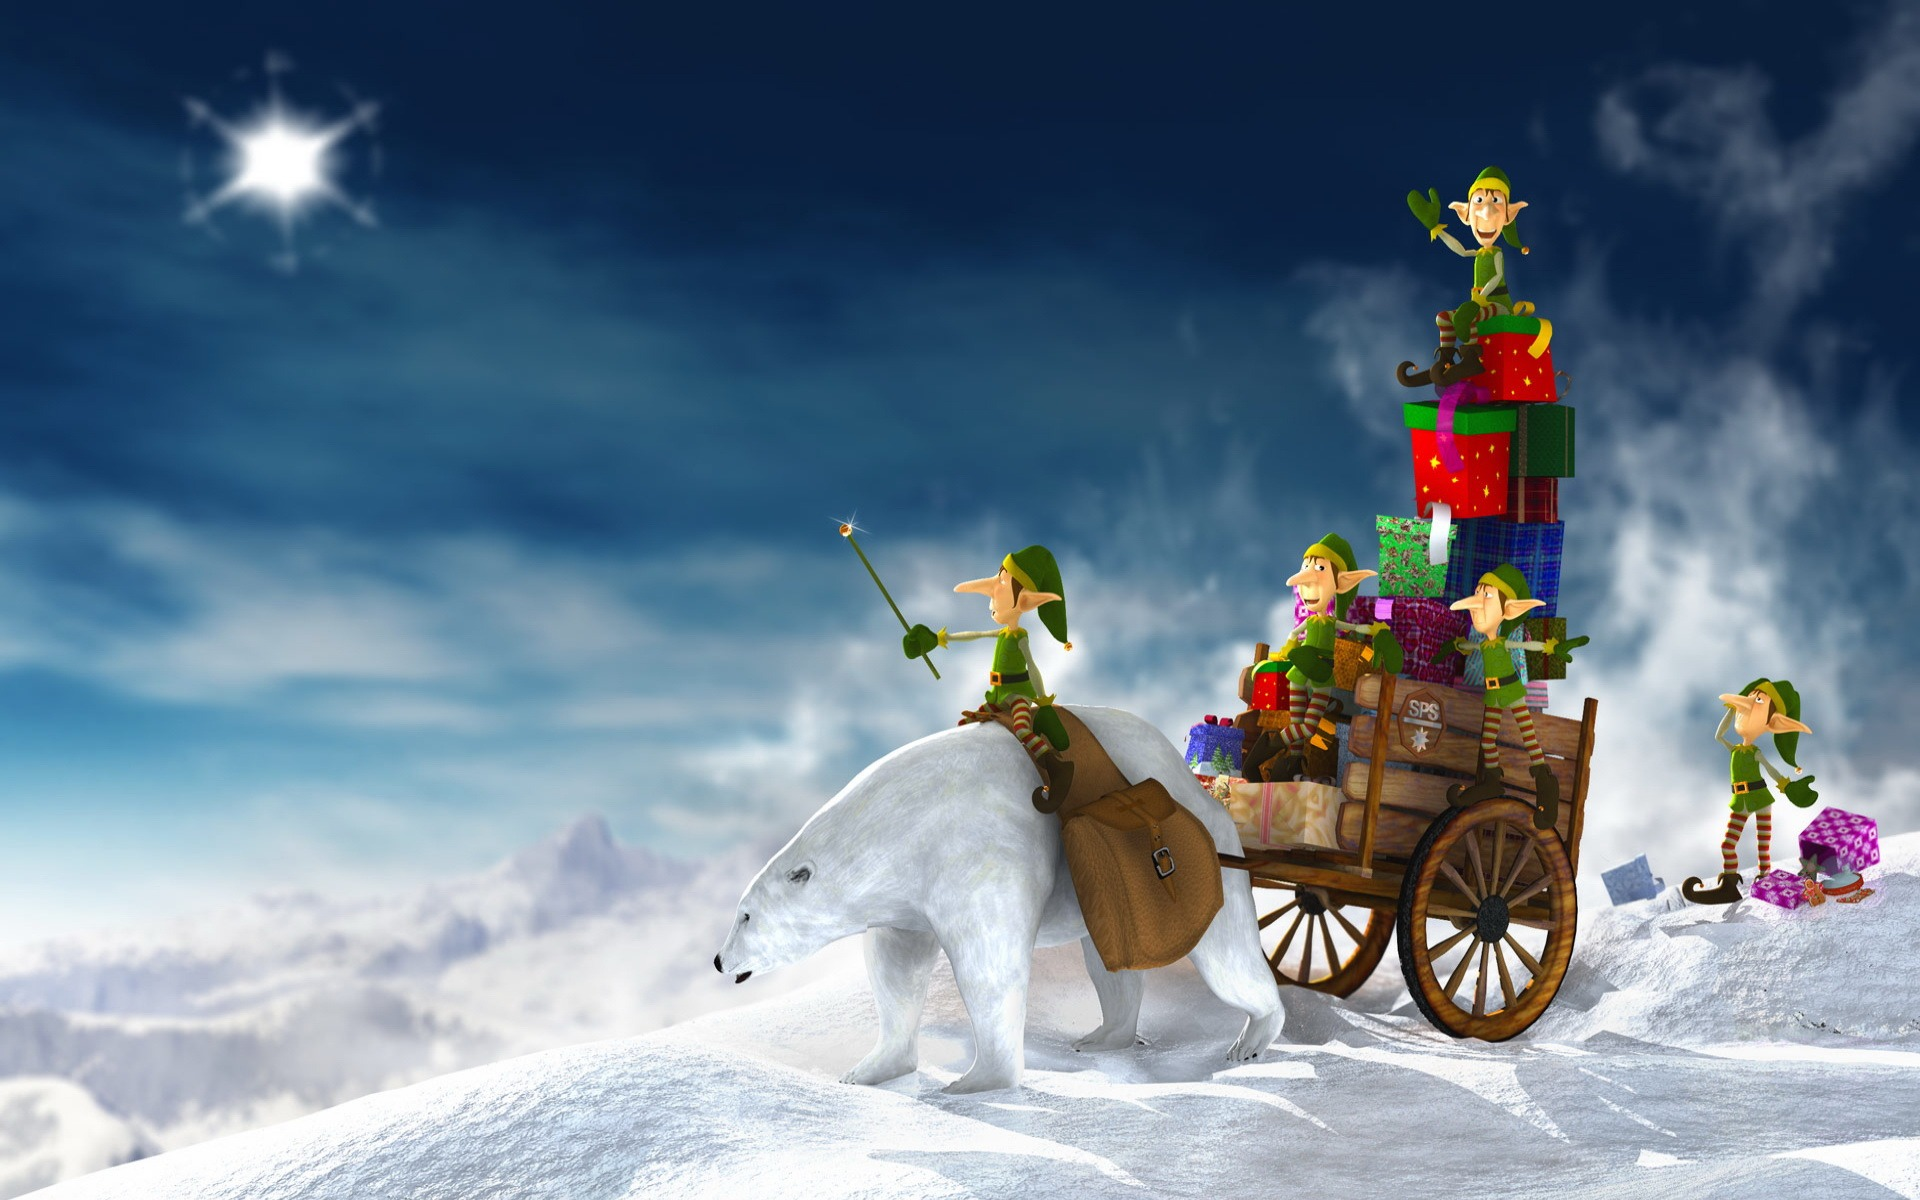 Christmas   Wallpapers Pictures Pics Images Photos Desktop 1920x1200